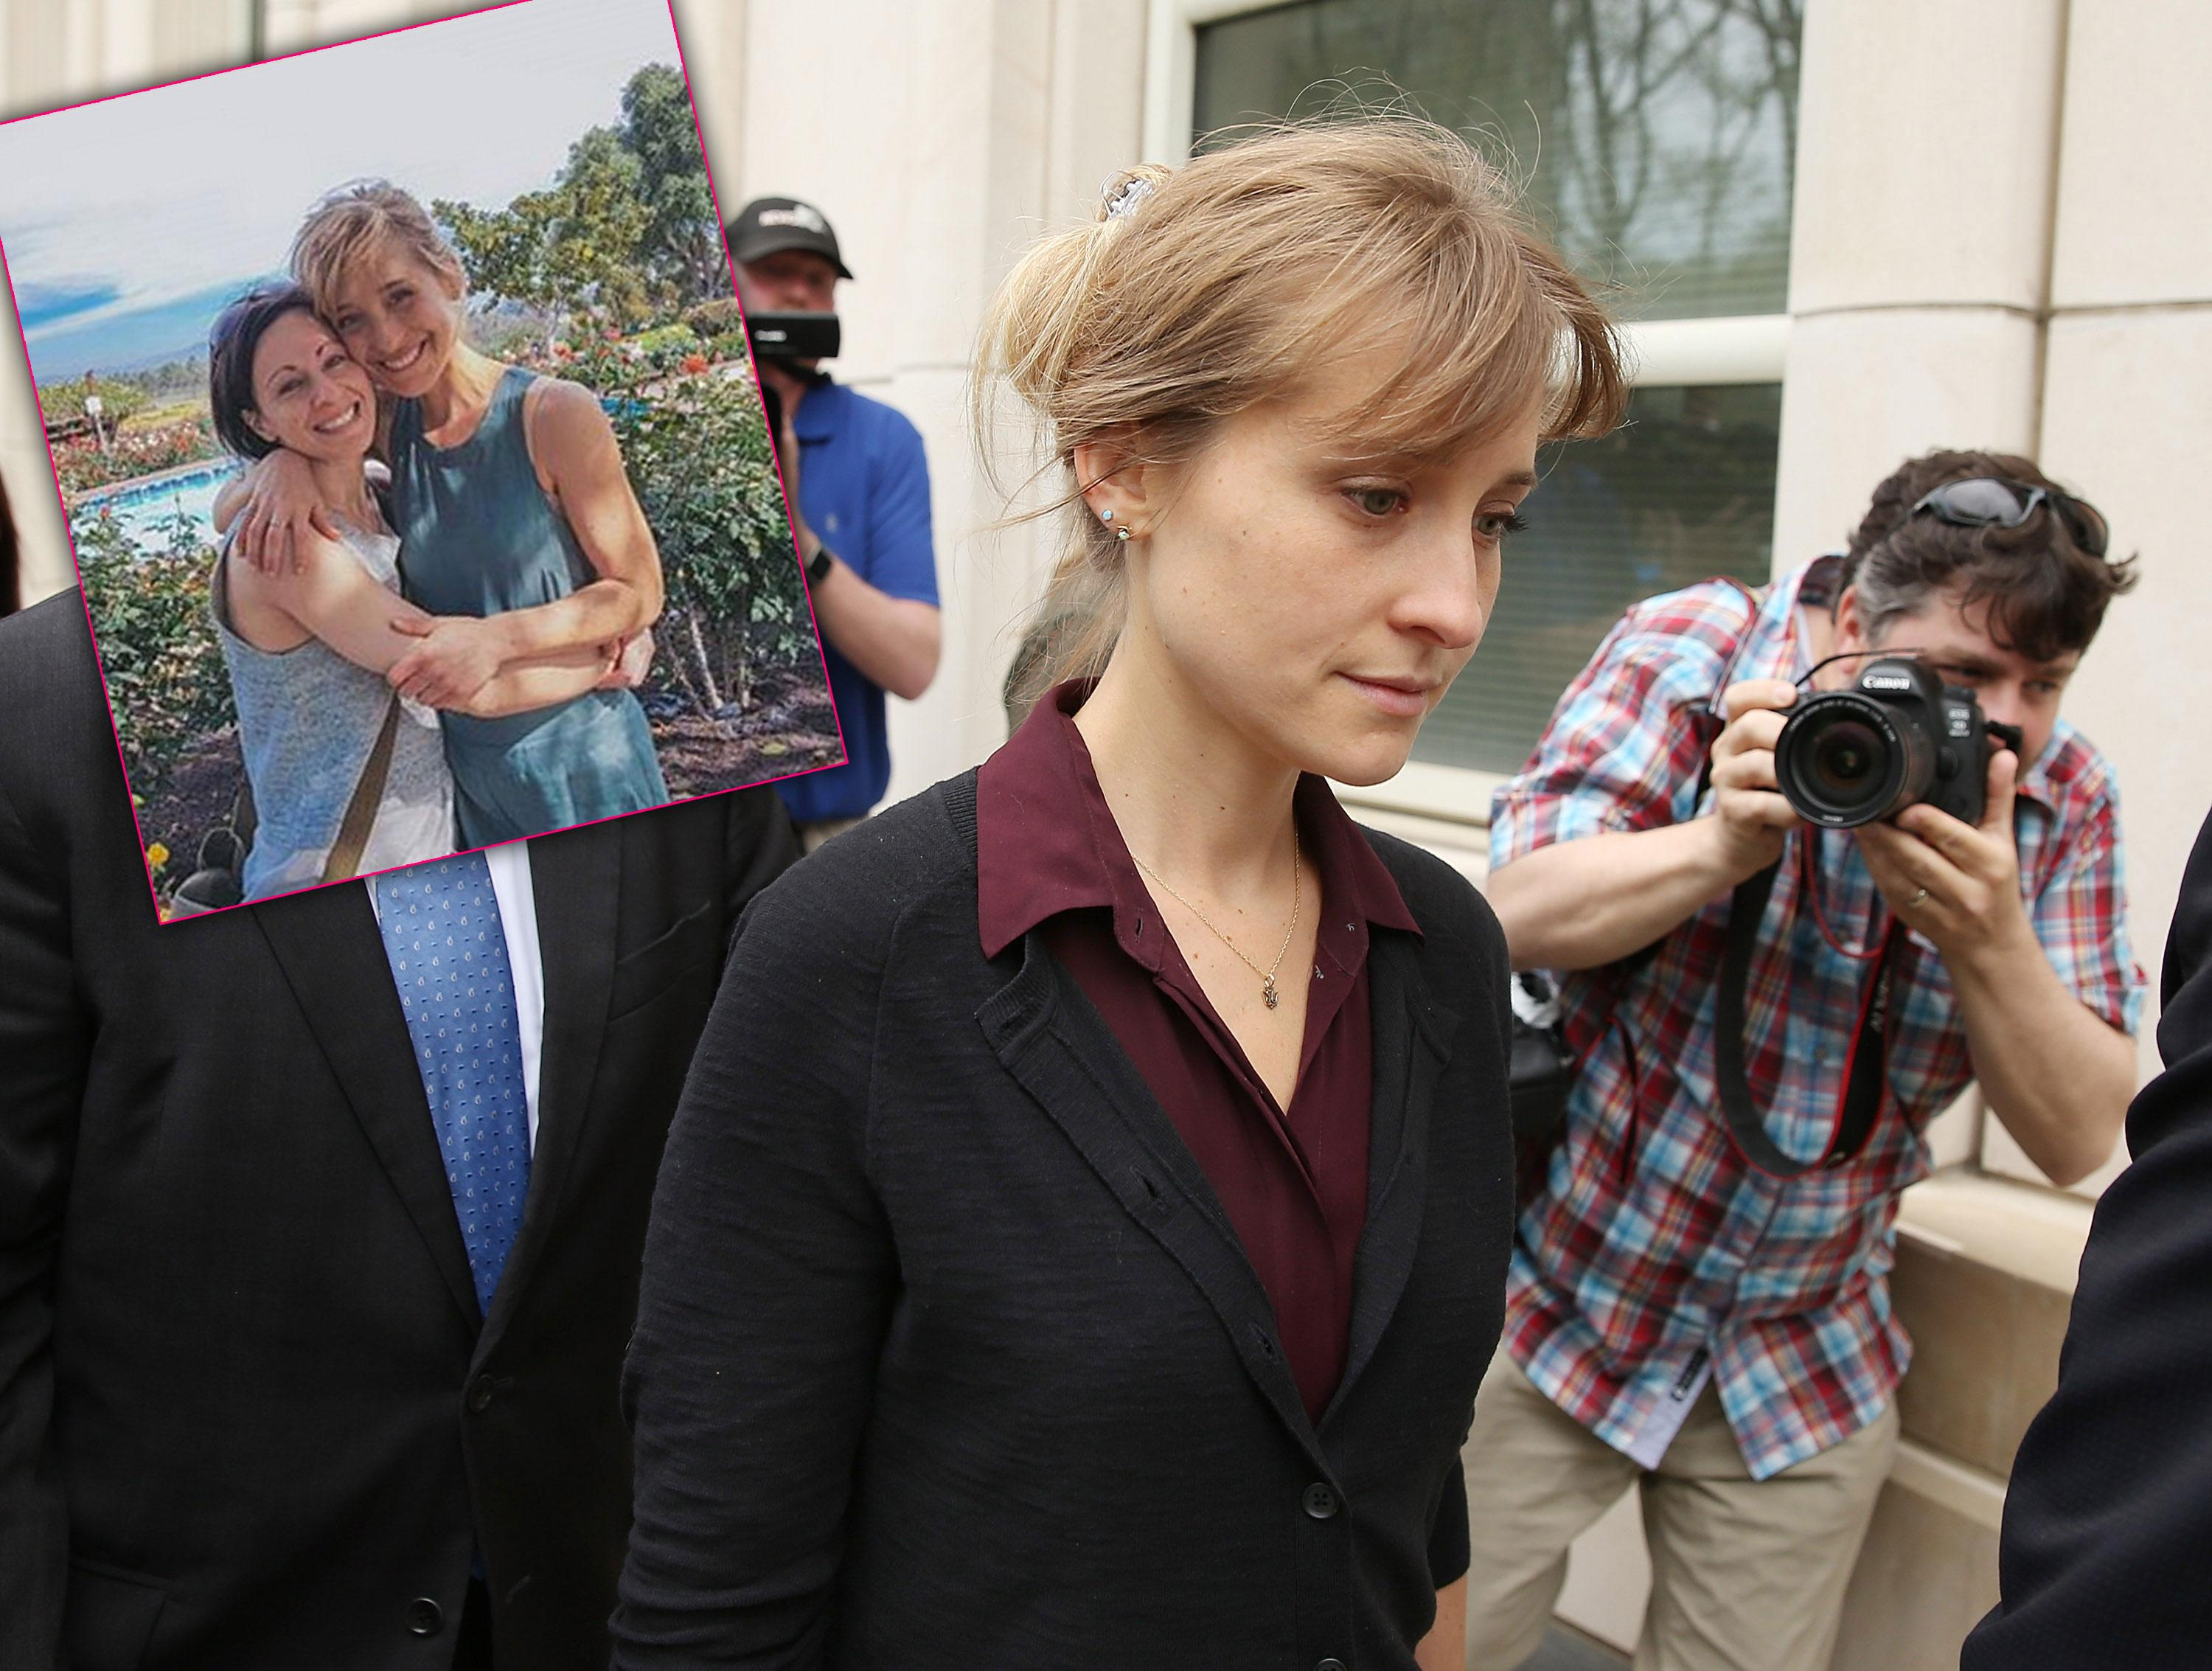 allison mack friends turning against her cult sex trafficking case